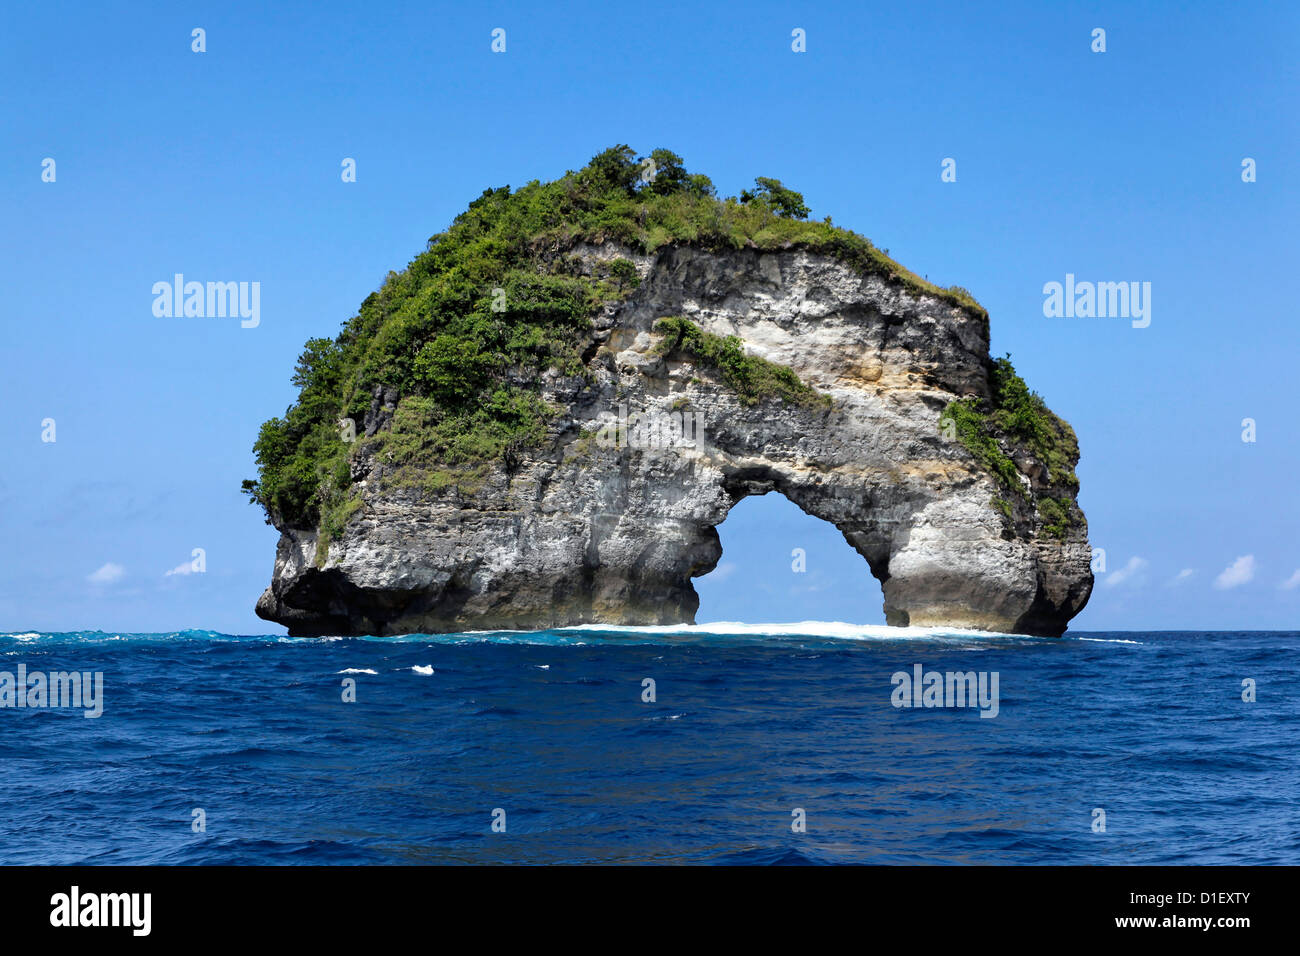 Rock arch above the water, Nusa Penida, Bali, Indonesia, Indian Ocean - Stock Image